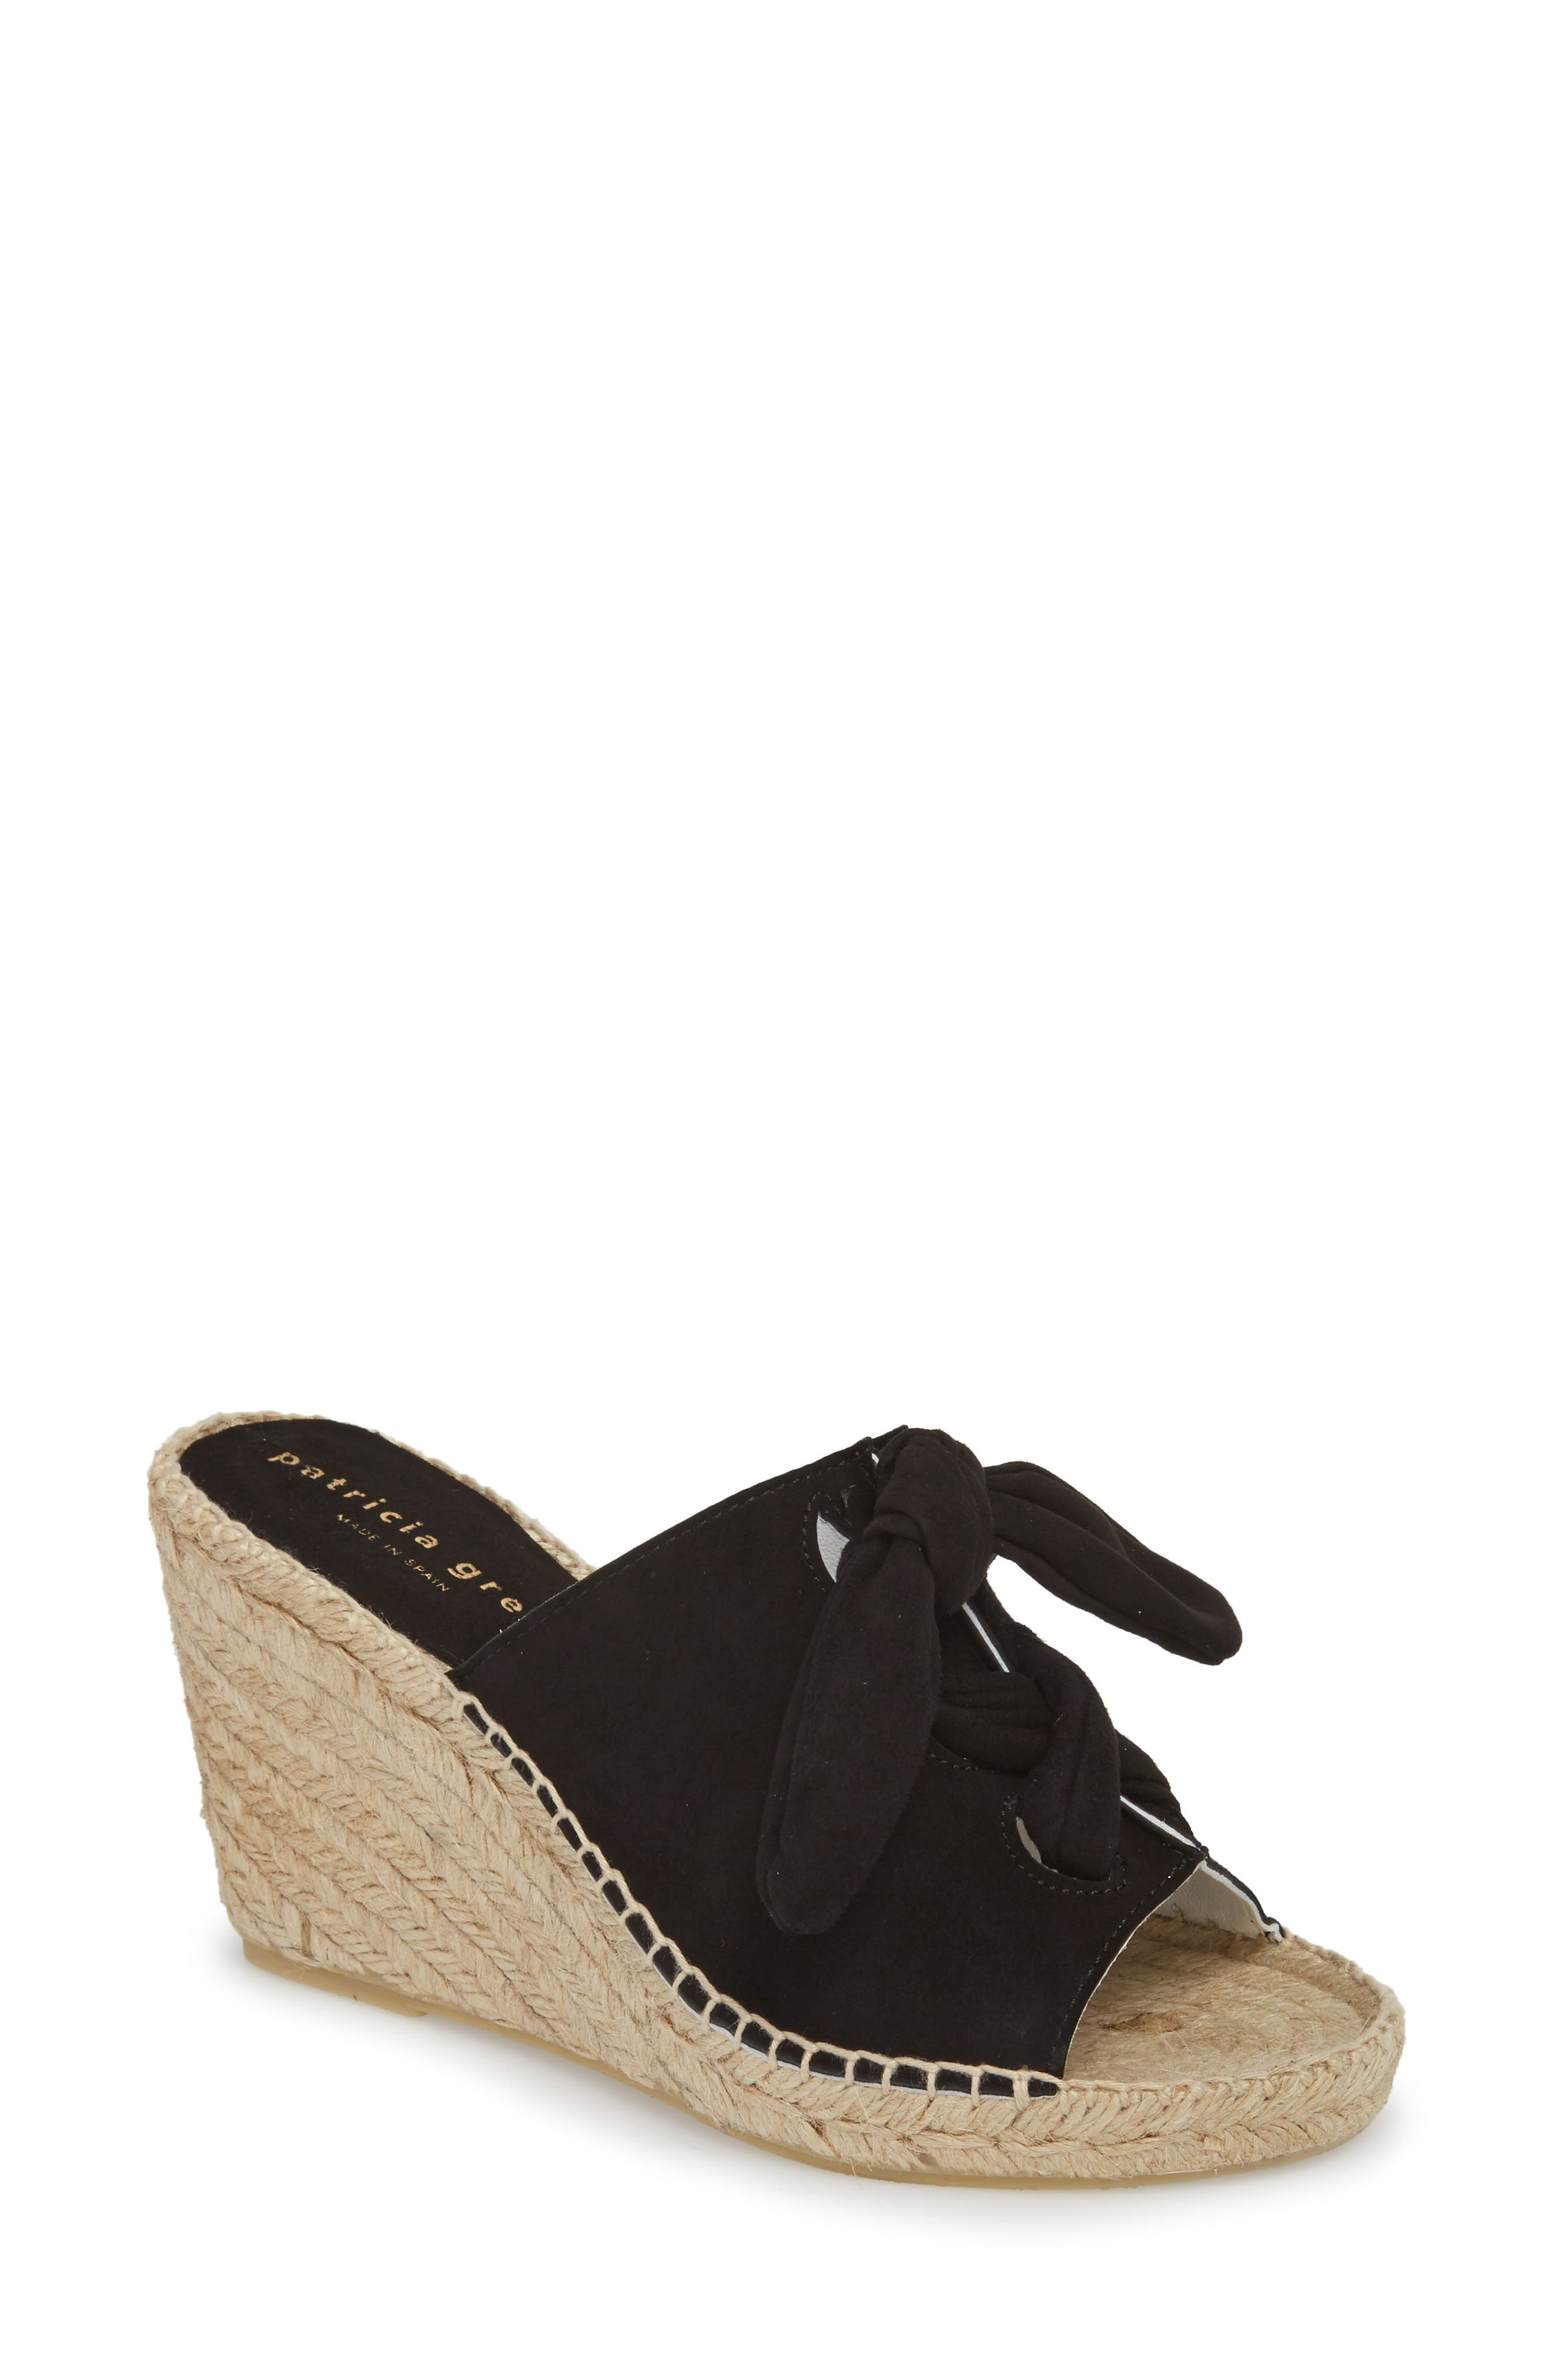 Flirt Espadrille Wedge Sandal,                         Main,                         color, Black Suede